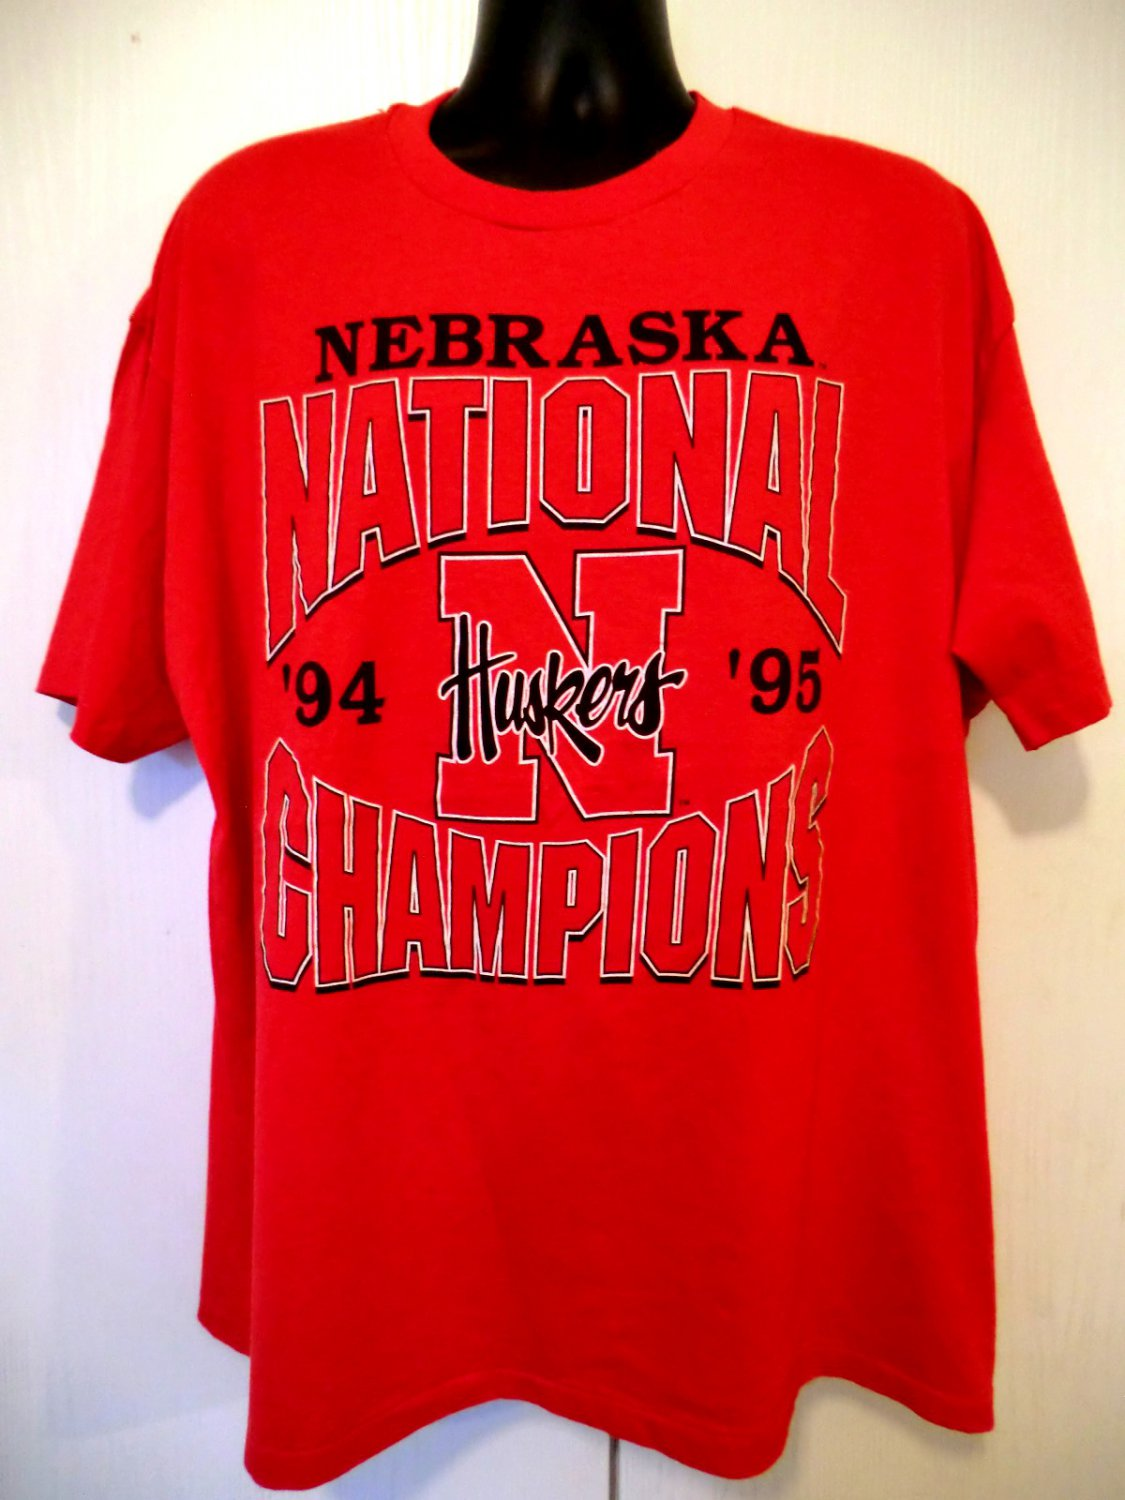 Nebraska CornHuskers  Huskers XXL (2XL) Red T-Shirt National Champions 1994 1995